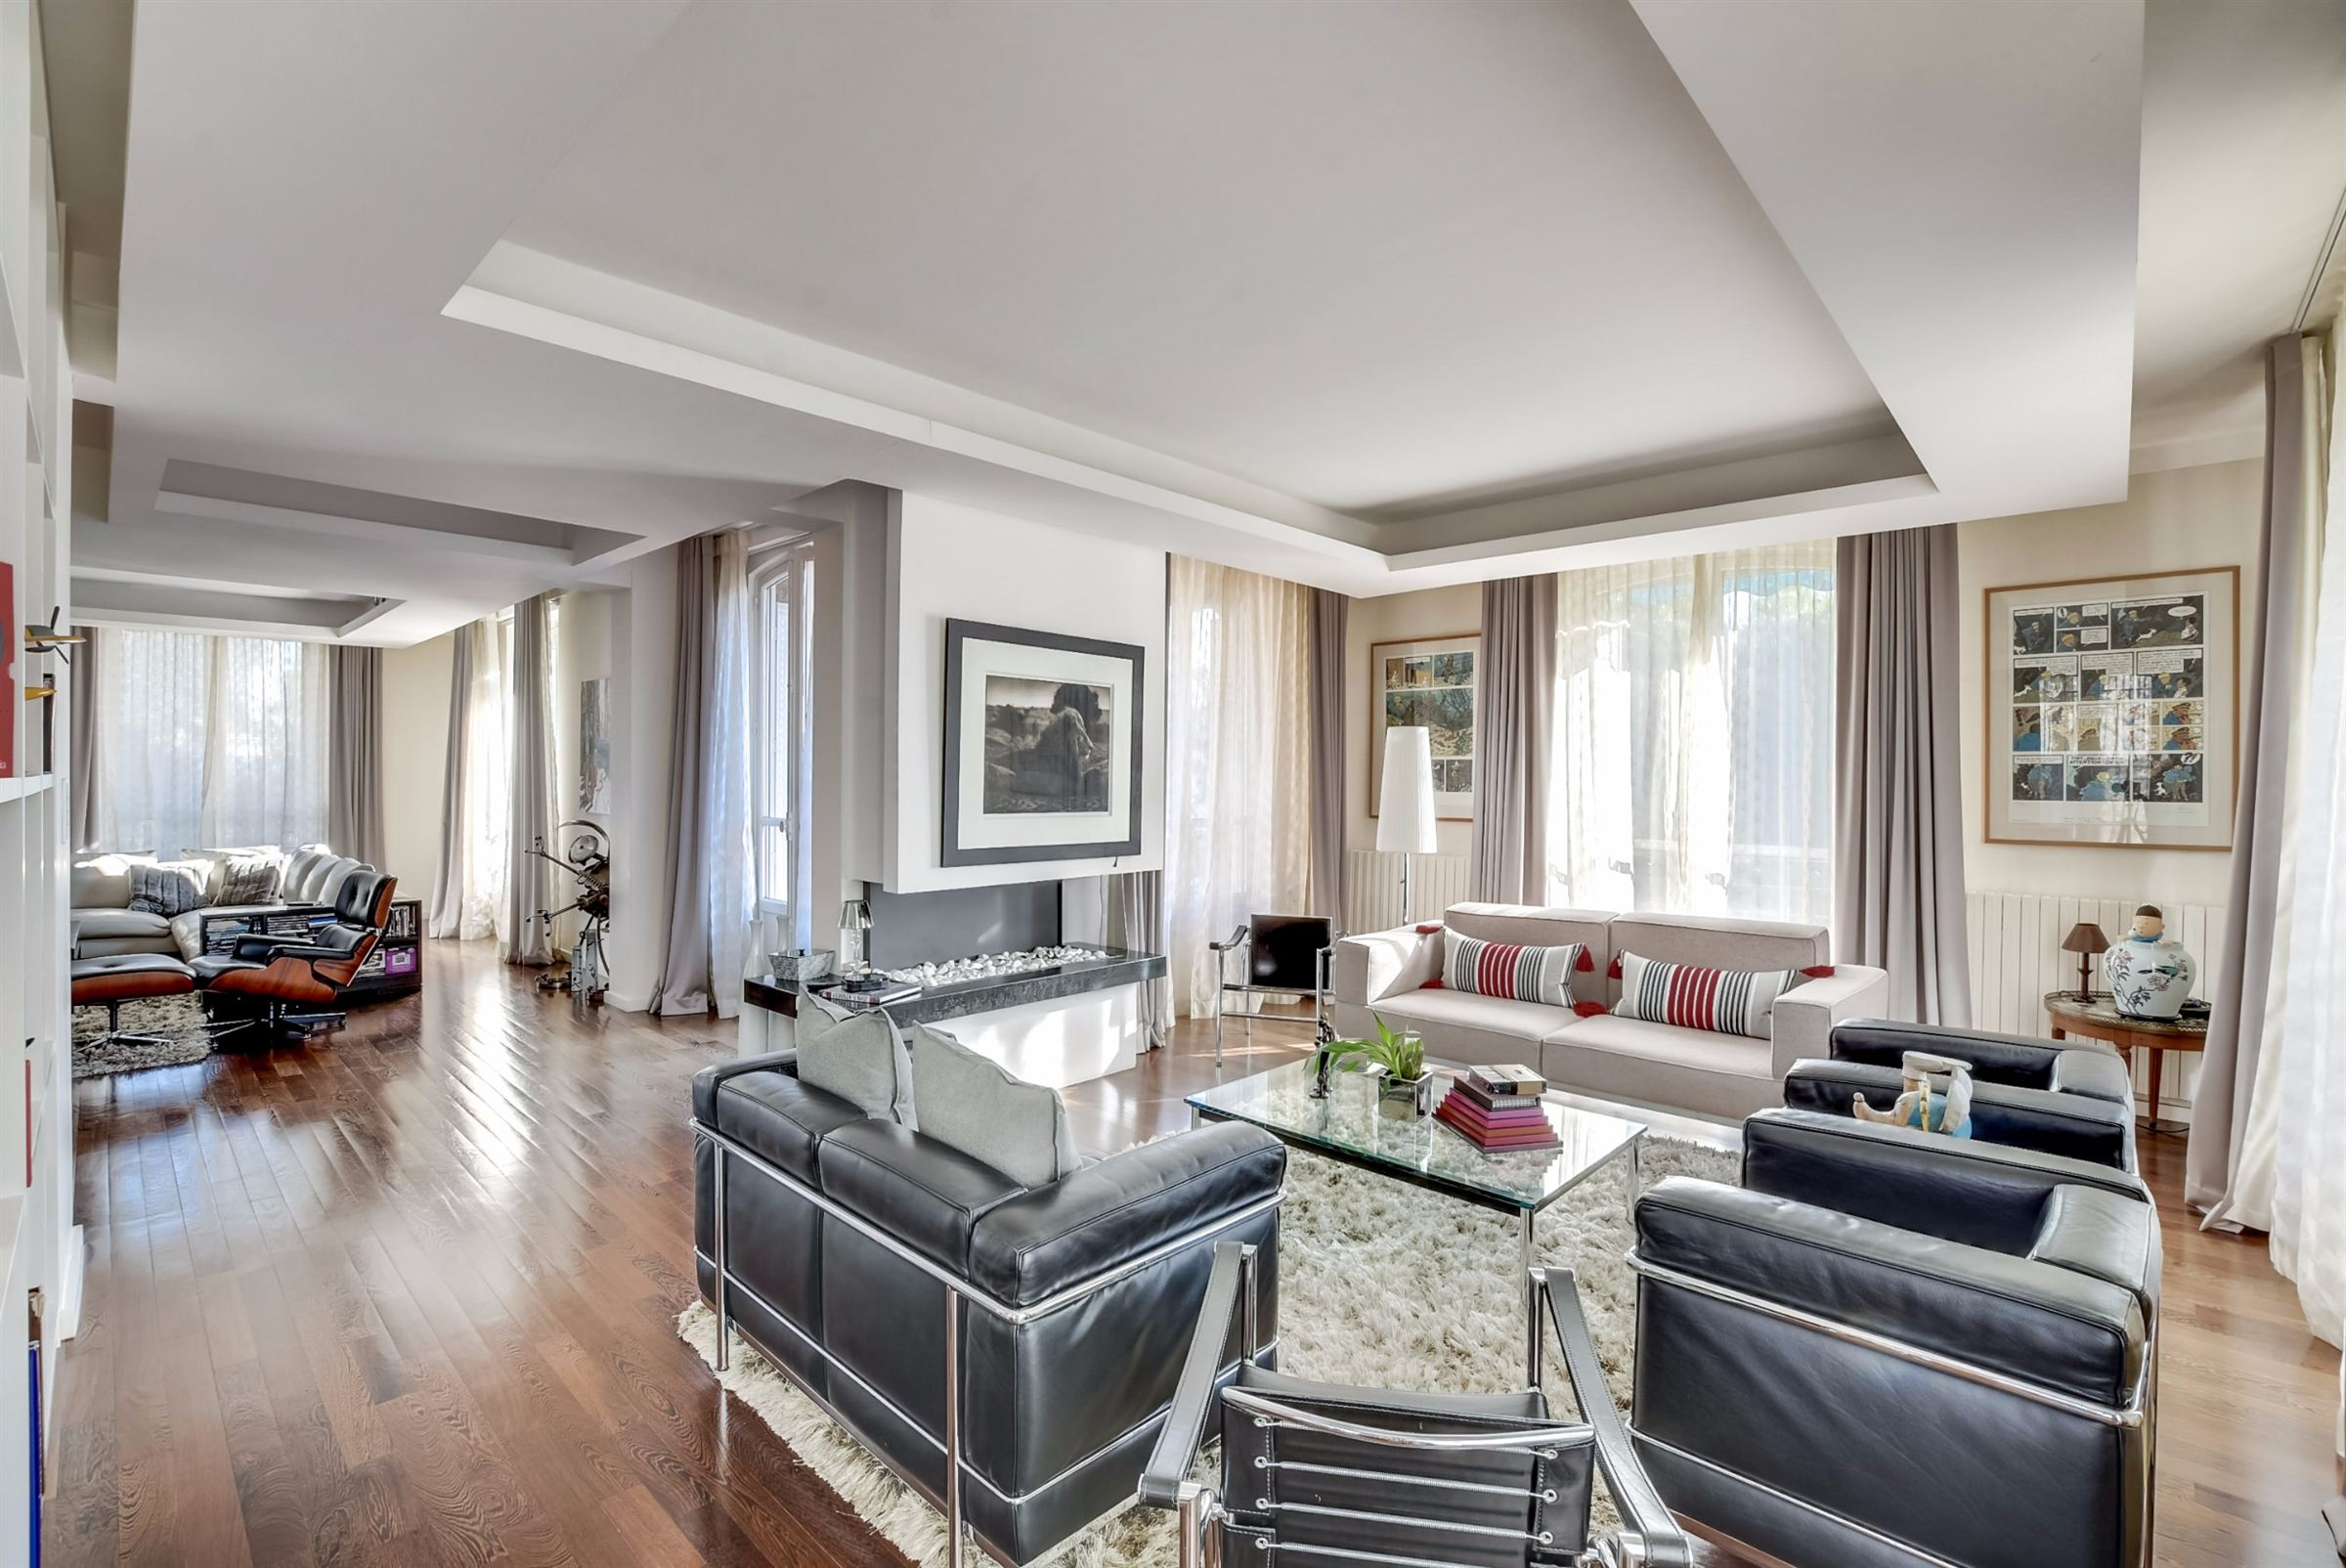 sales property at Modern TownHouse on sale, renovated Boulogne - Rolland Garros, 4 bedrooms